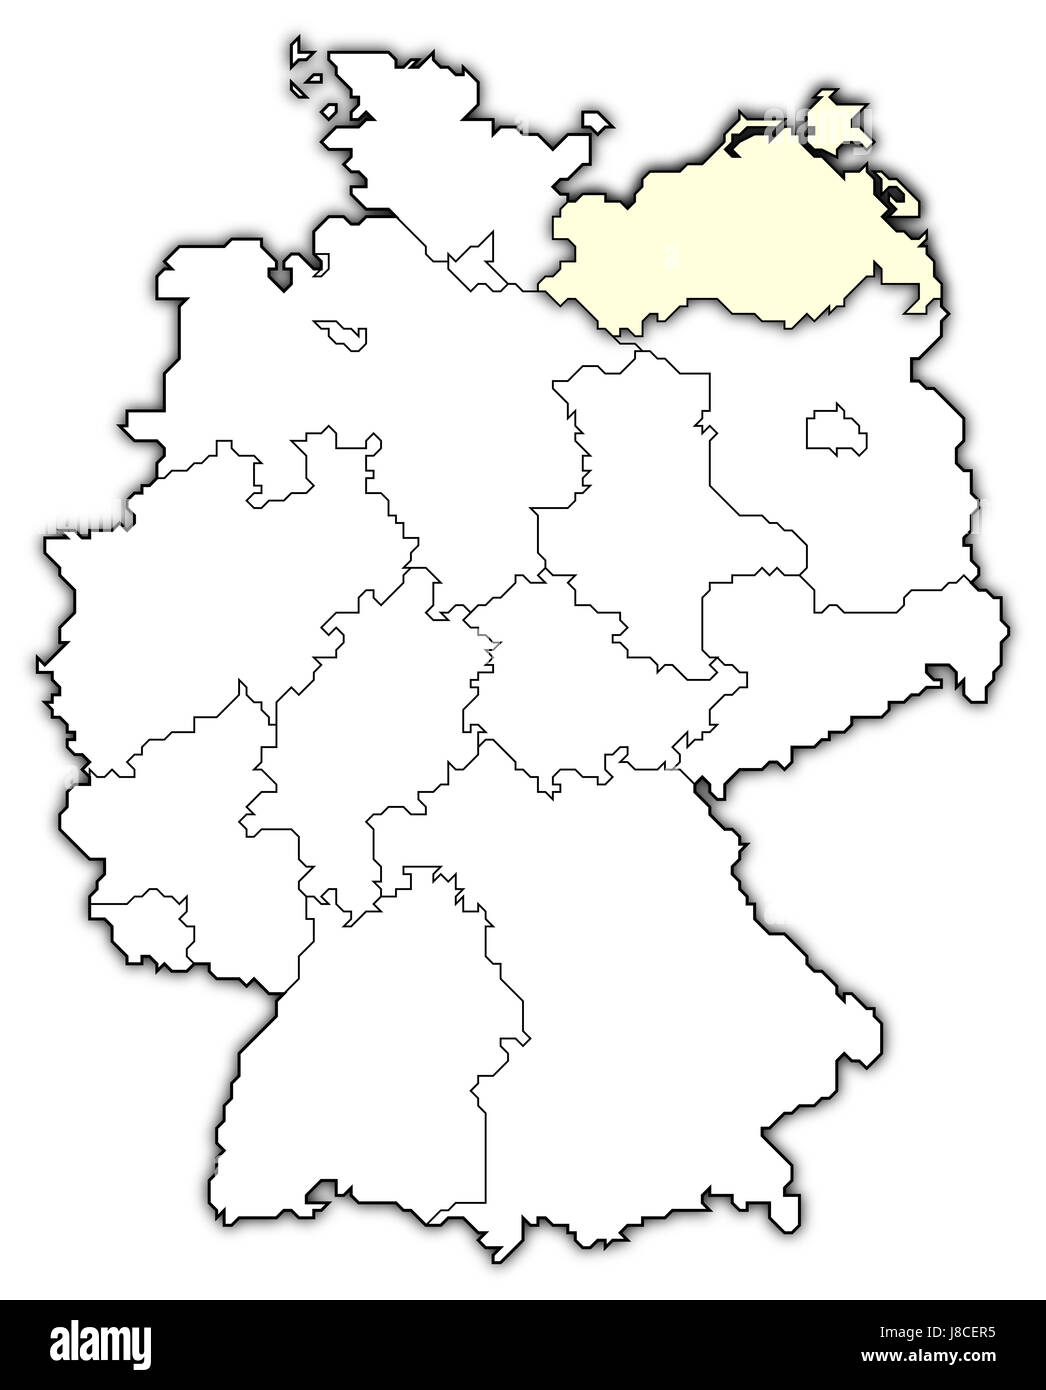 Map of germanymecklenburg vorpommern highlighted stock photo map of germanymecklenburg vorpommern highlighted gumiabroncs Choice Image